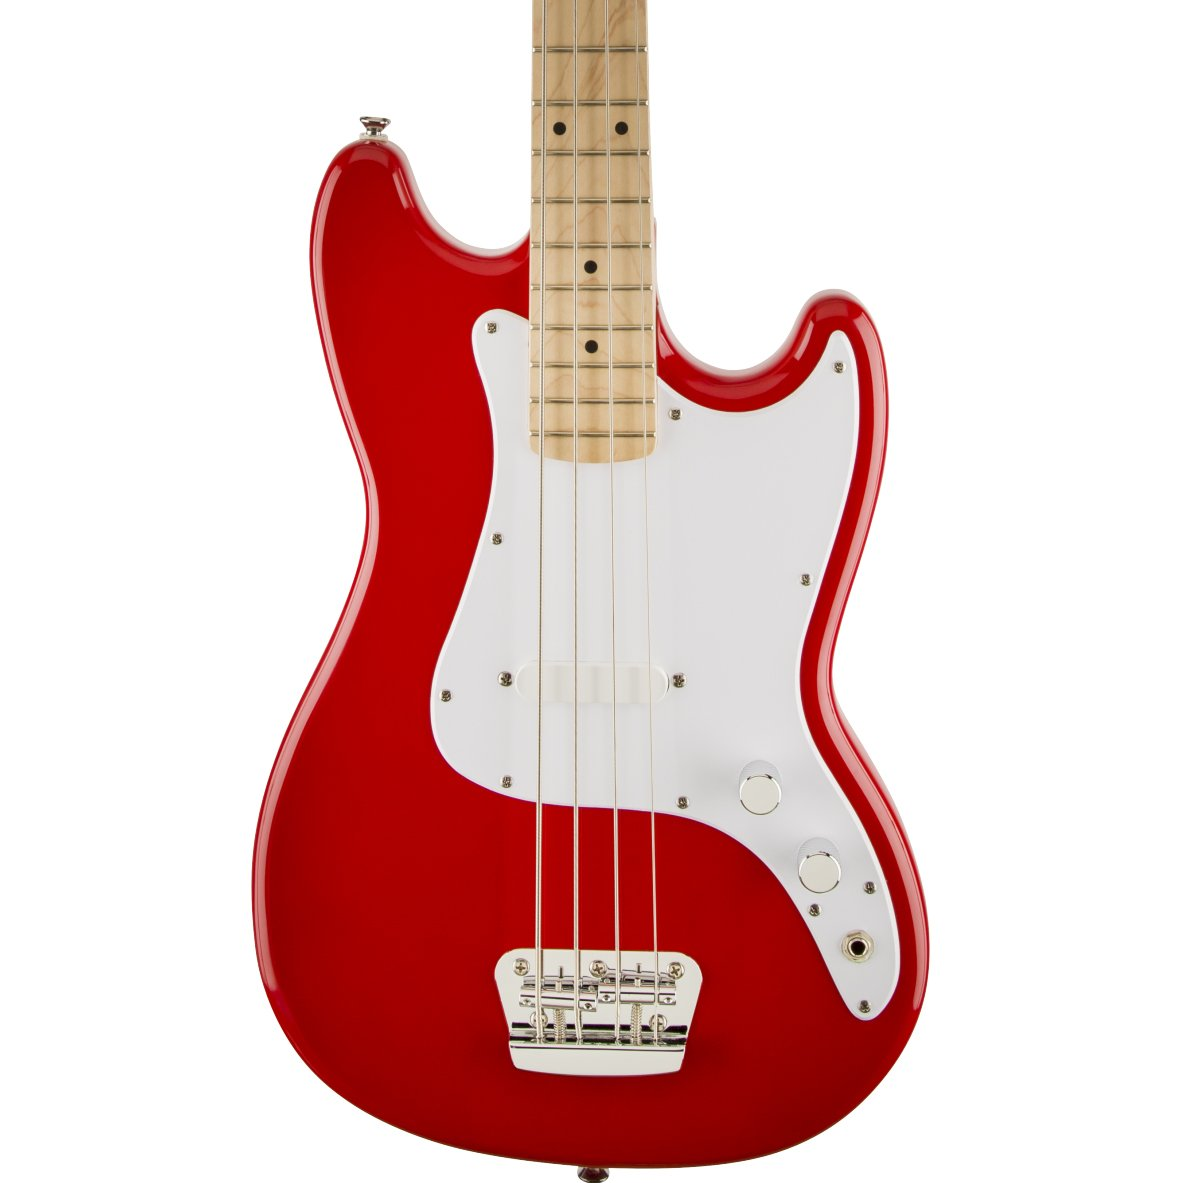 Squier Affinity Series Bronco Bass - Torino Red